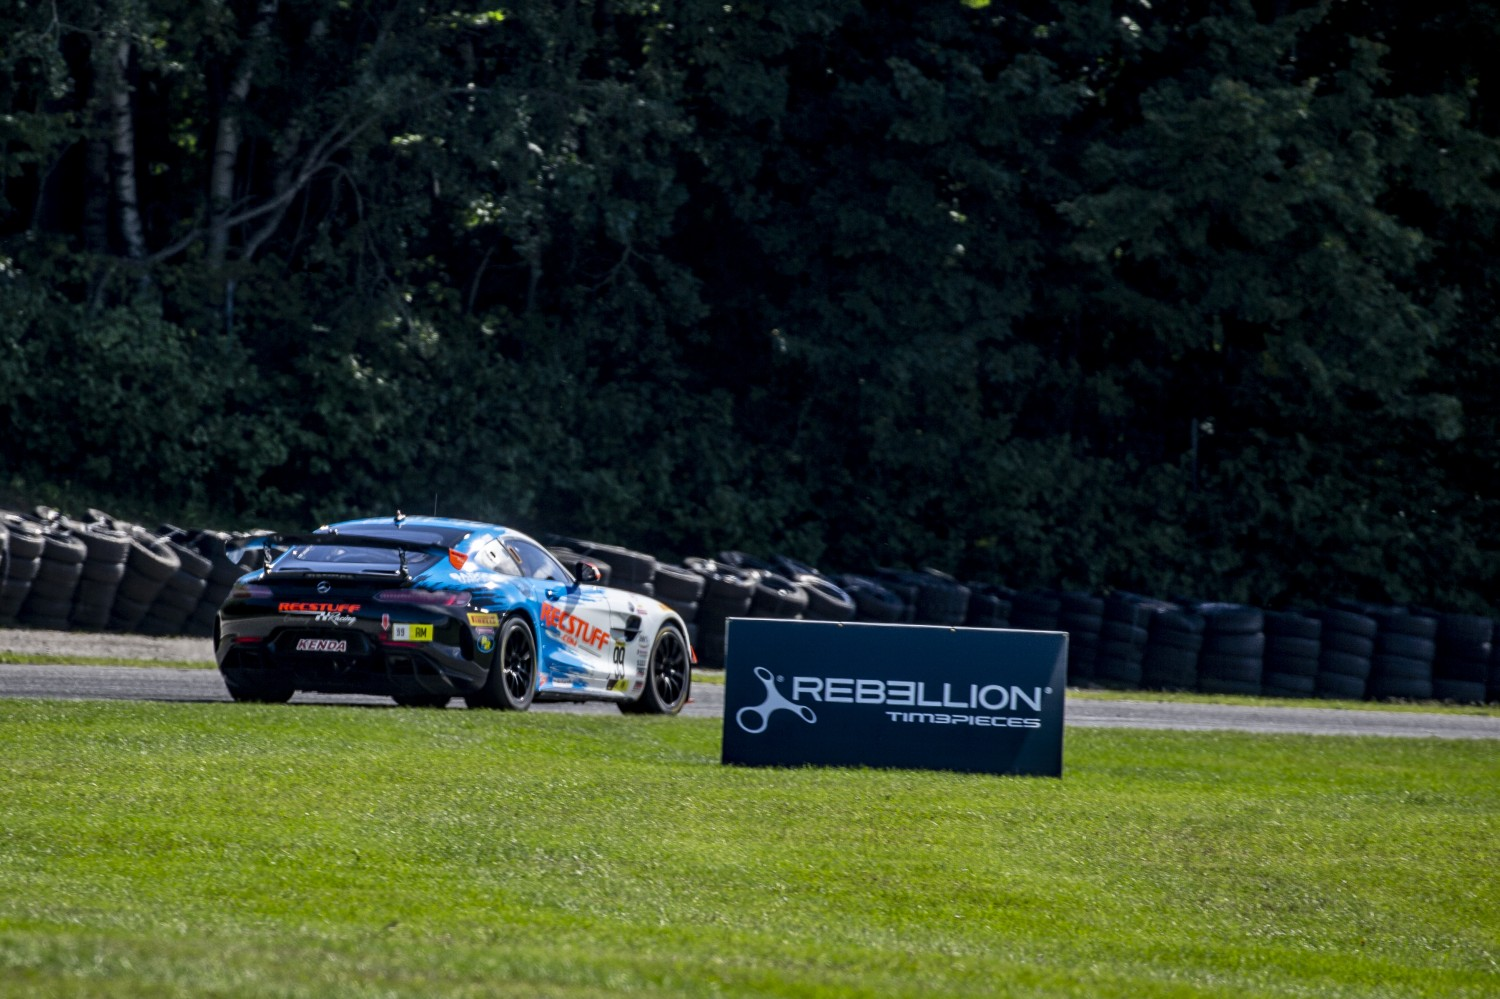 #99 Mercedes-AMG GT4 of Jeff Courtney, RecStuff Racing, GT4 Sprint Am, SRO America, Road America, Elkhart Lake, WI, July 2020.  | Brian Cleary/SRO